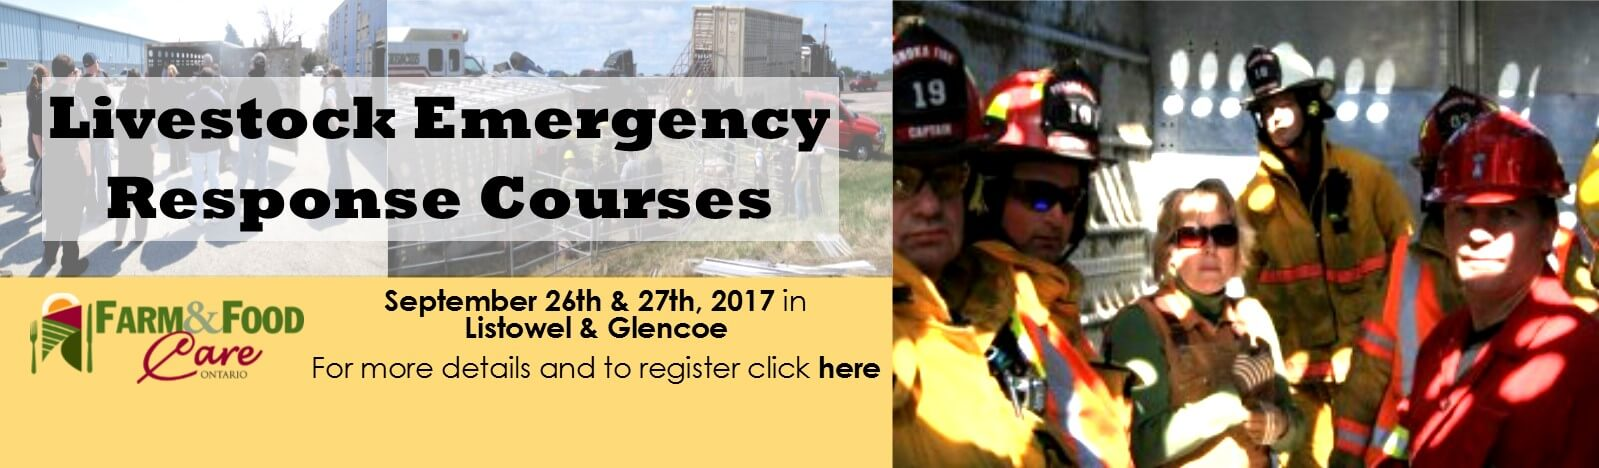 Livestock Emergency Course